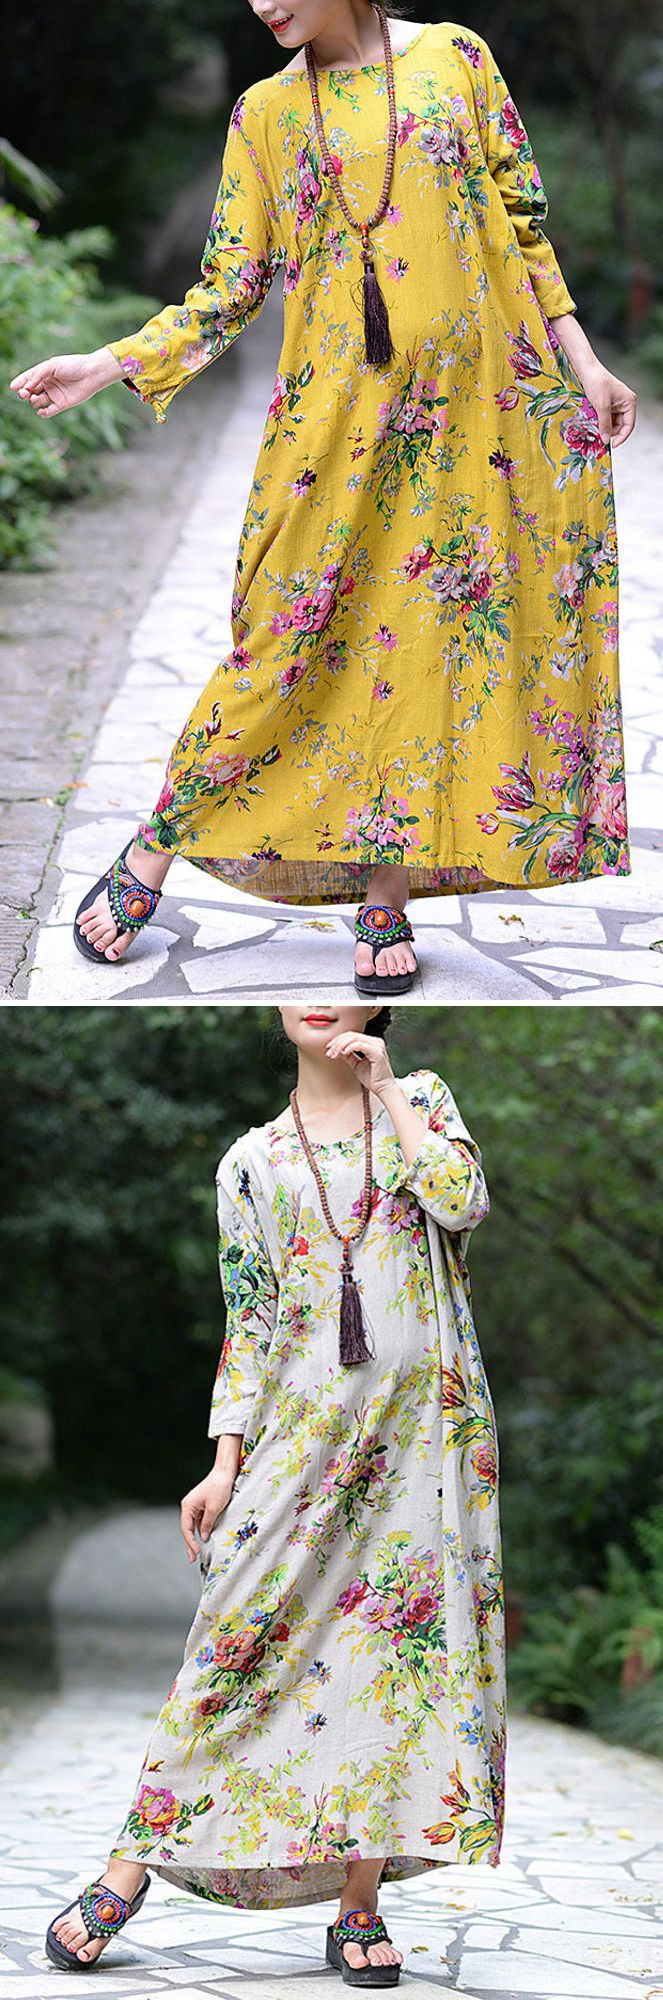 Chinese style floral oneck long sleeve maxi dress for women long